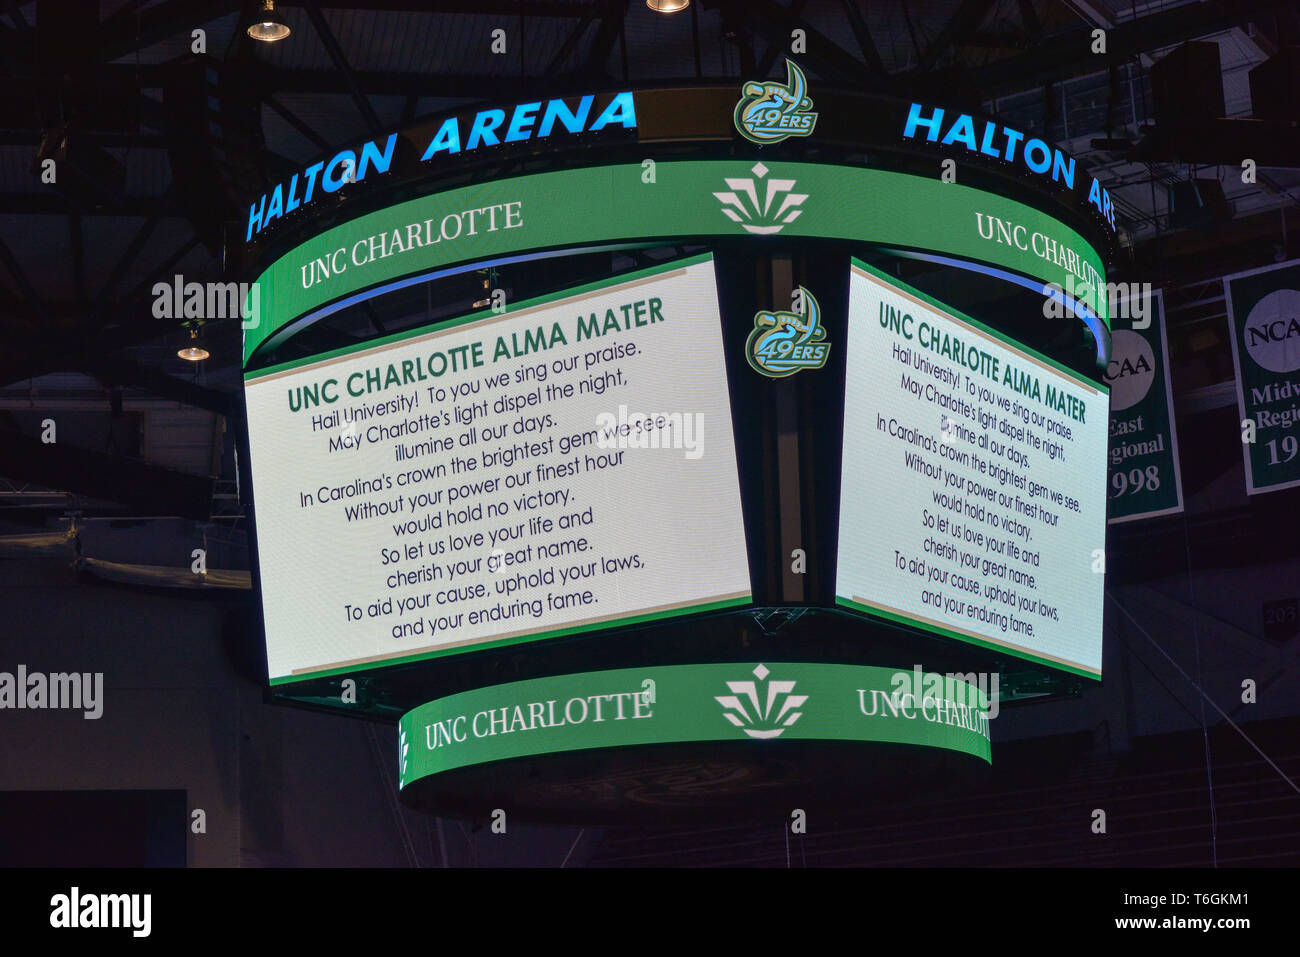 Charlotte, North Carolina, USA. 01st May, 2019. Students, teachers, and community members gather to hold vigil at UNCC in Halton Arena with speakers, music, and the singing of the school alma mater. A mass shooting occurred at the university the prior day adding one more school to the list of school shootings in America in the midst of a gun control controversy. Credit: Castle Light Images/Alamy Live News - Stock Image